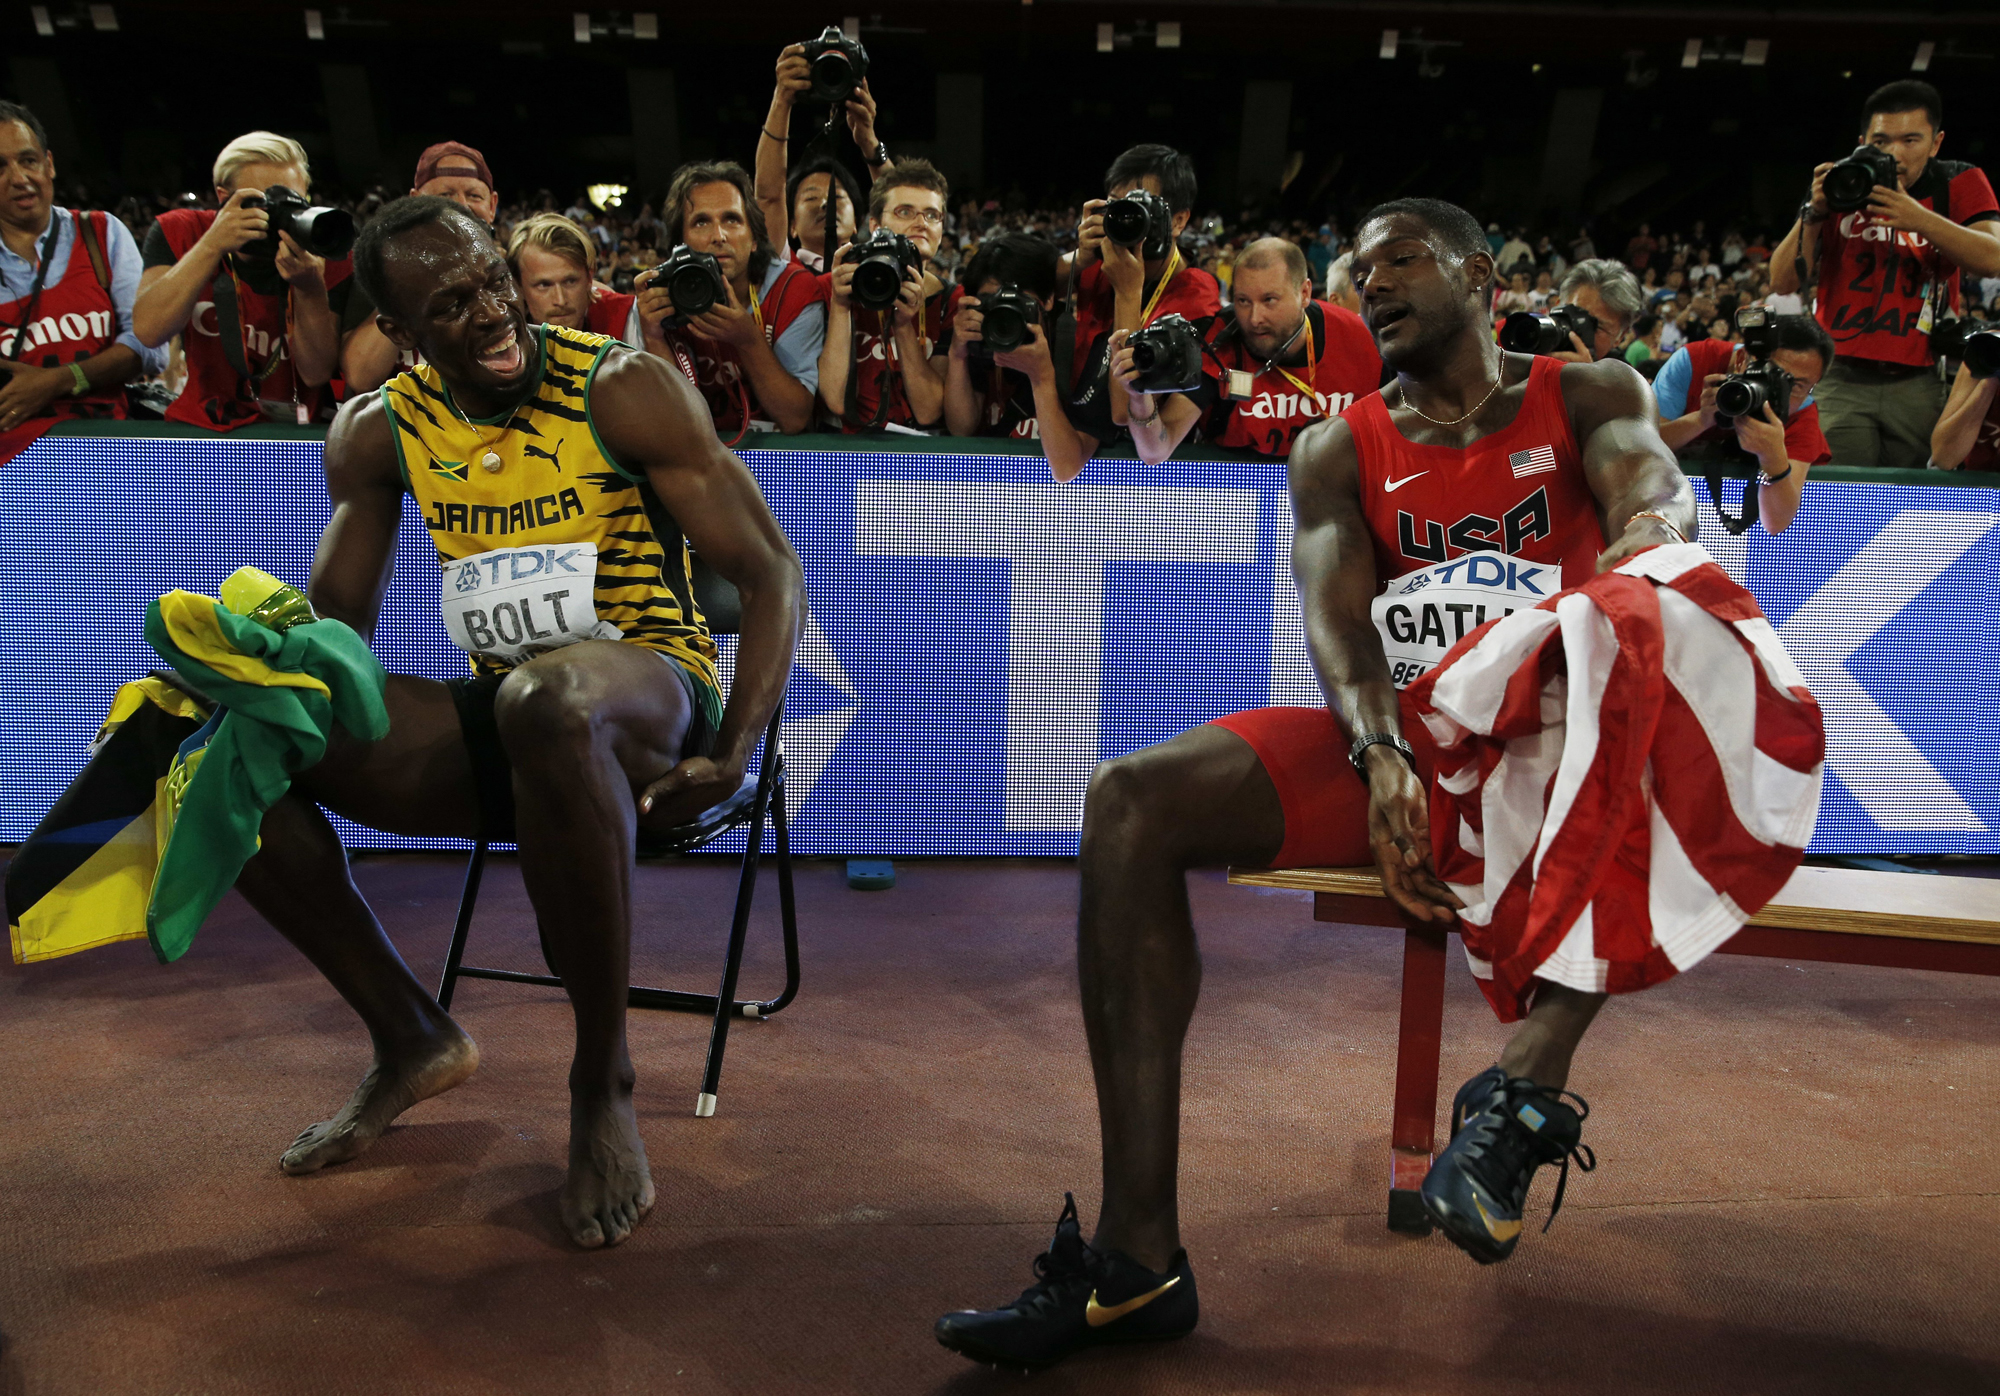 "Jamaica's Usain Bolt (L) and USA's Justin Gatlin (R) celebrate after winning first and second place respectively in the final of the men's 200 metres athletics event at the 2015 IAAF World Championships at the ""Bird's Nest"" National Stadium in Beijing on August 27, 2015."